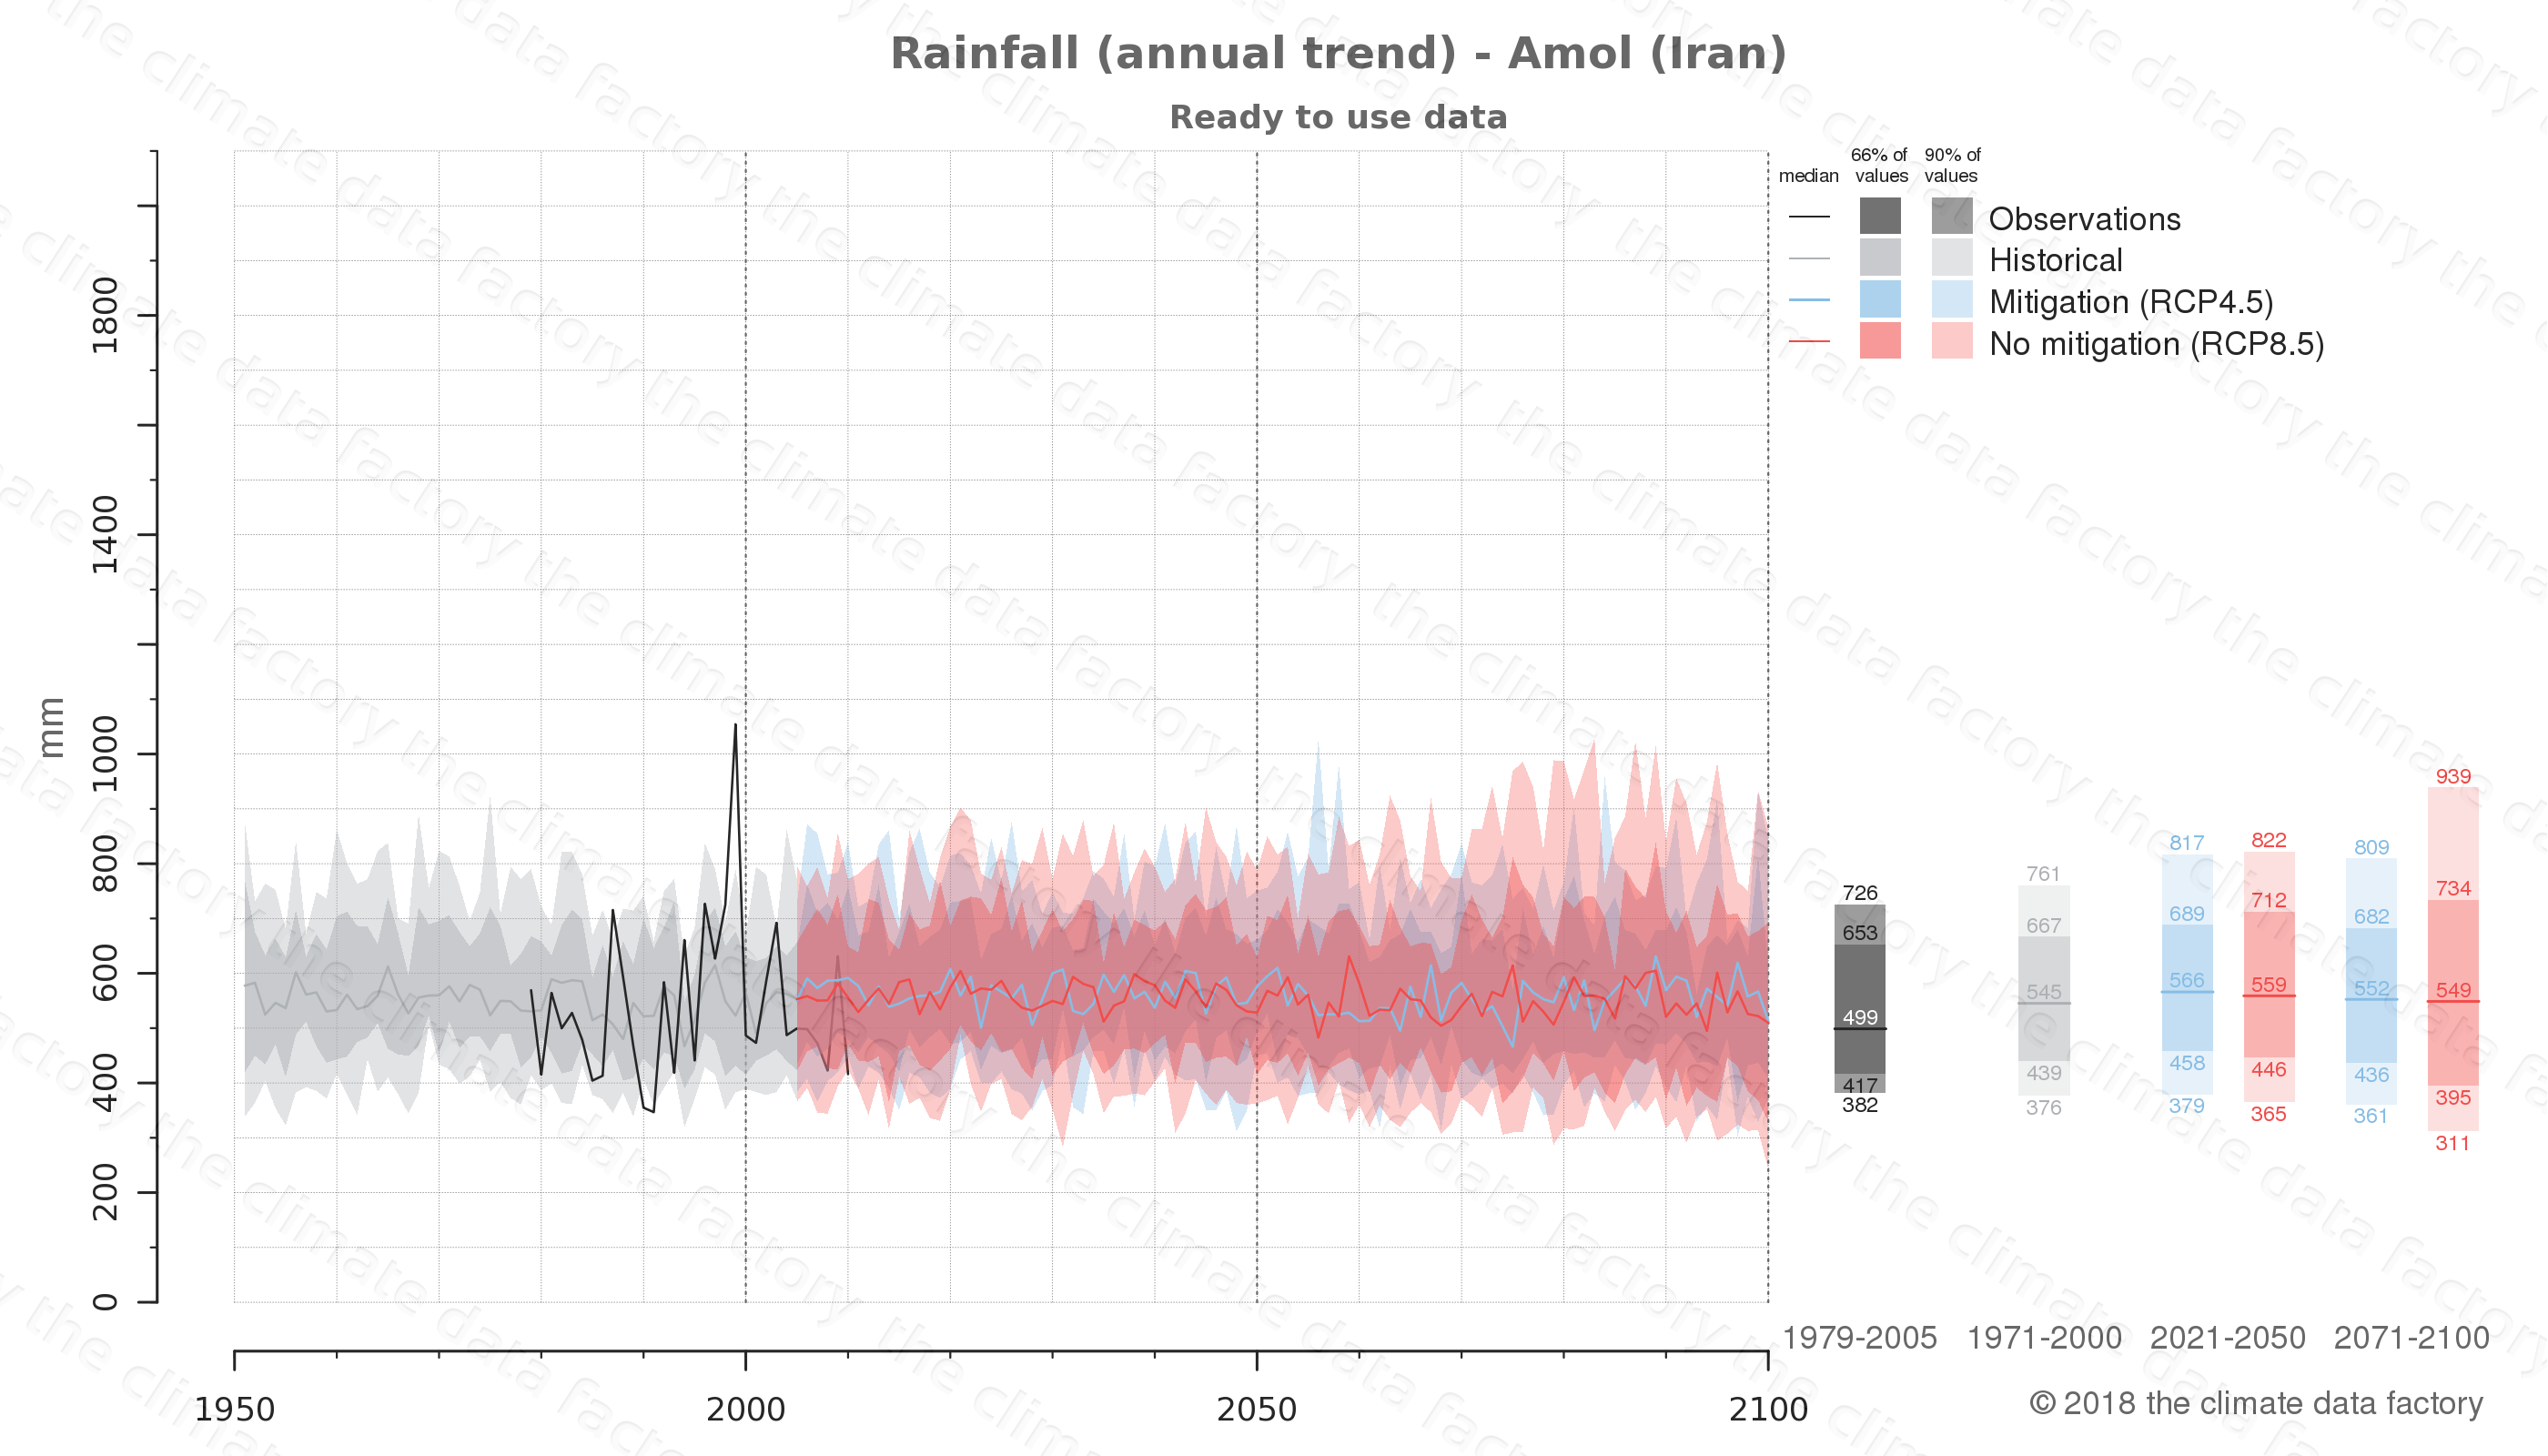 climate change data policy adaptation climate graph city data rainfall amol iran